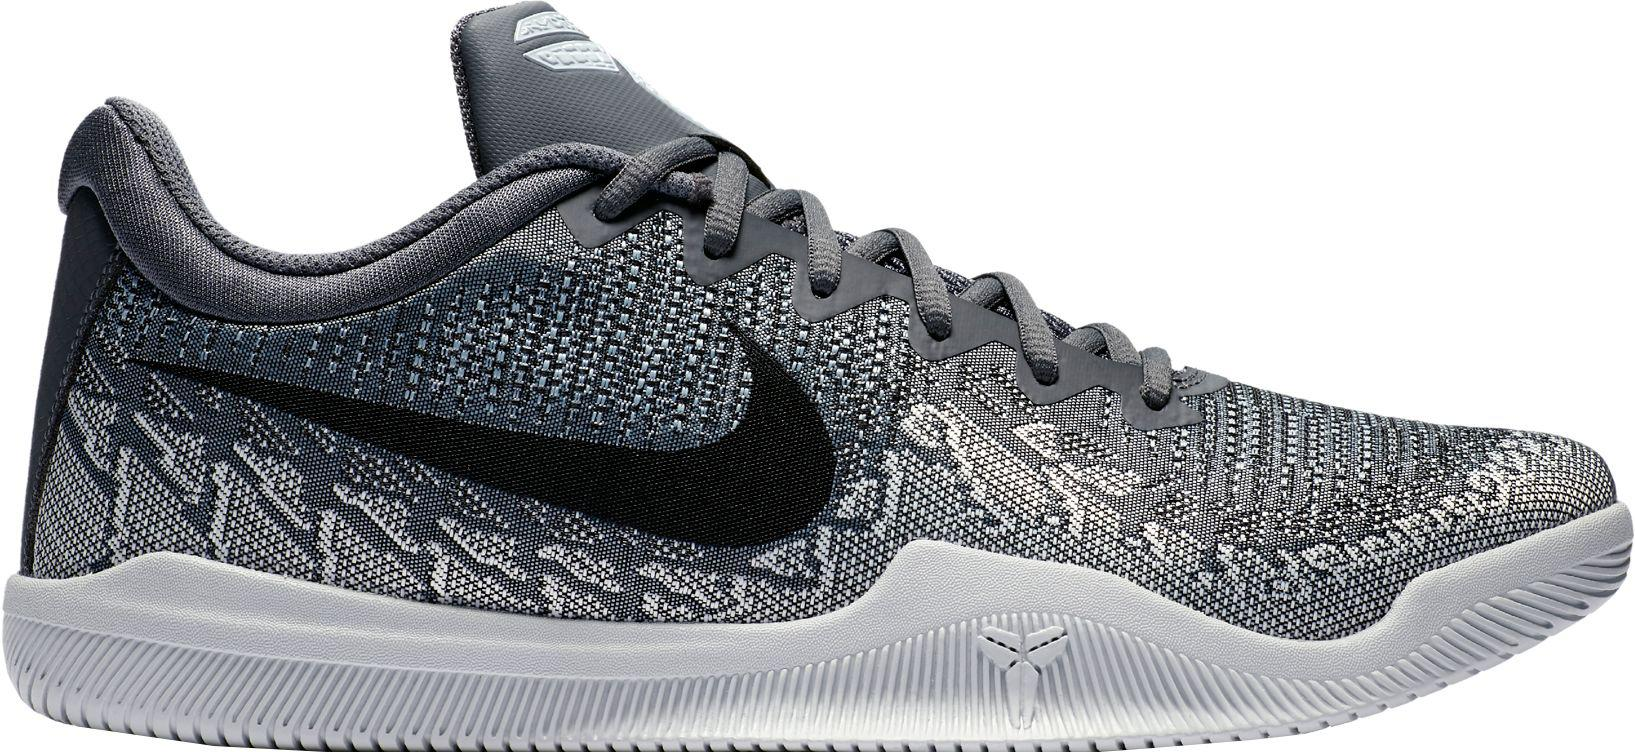 a47a565212684 Lyst - Nike Kobe Mamba Rage Basketball Shoes in Gray for Men